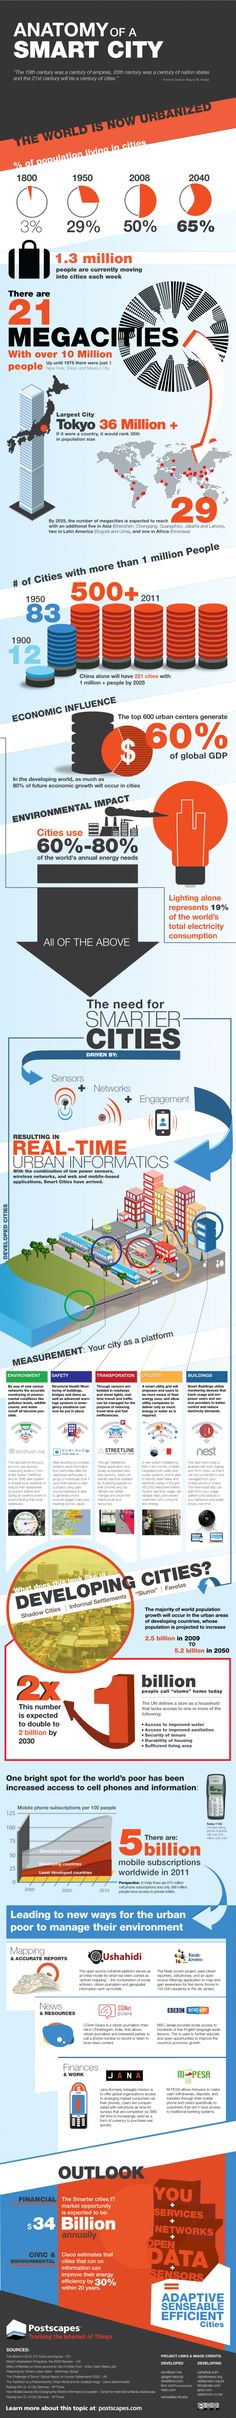 Infographic: Anatomy of a Smart City